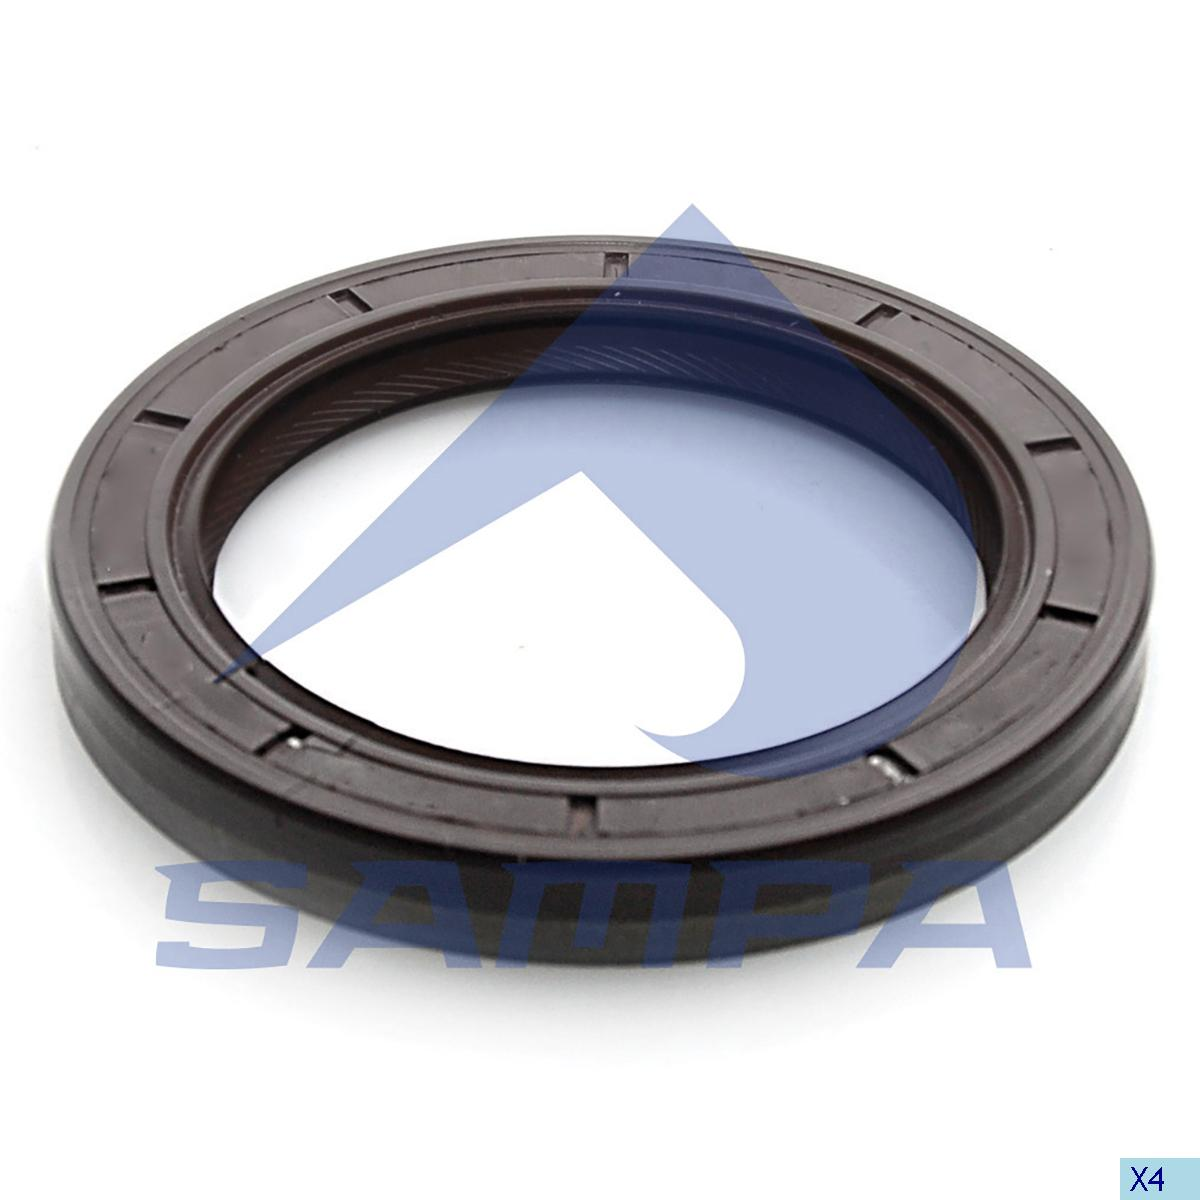 Seal Ring, Clutch Housing, Volvo, Clutch